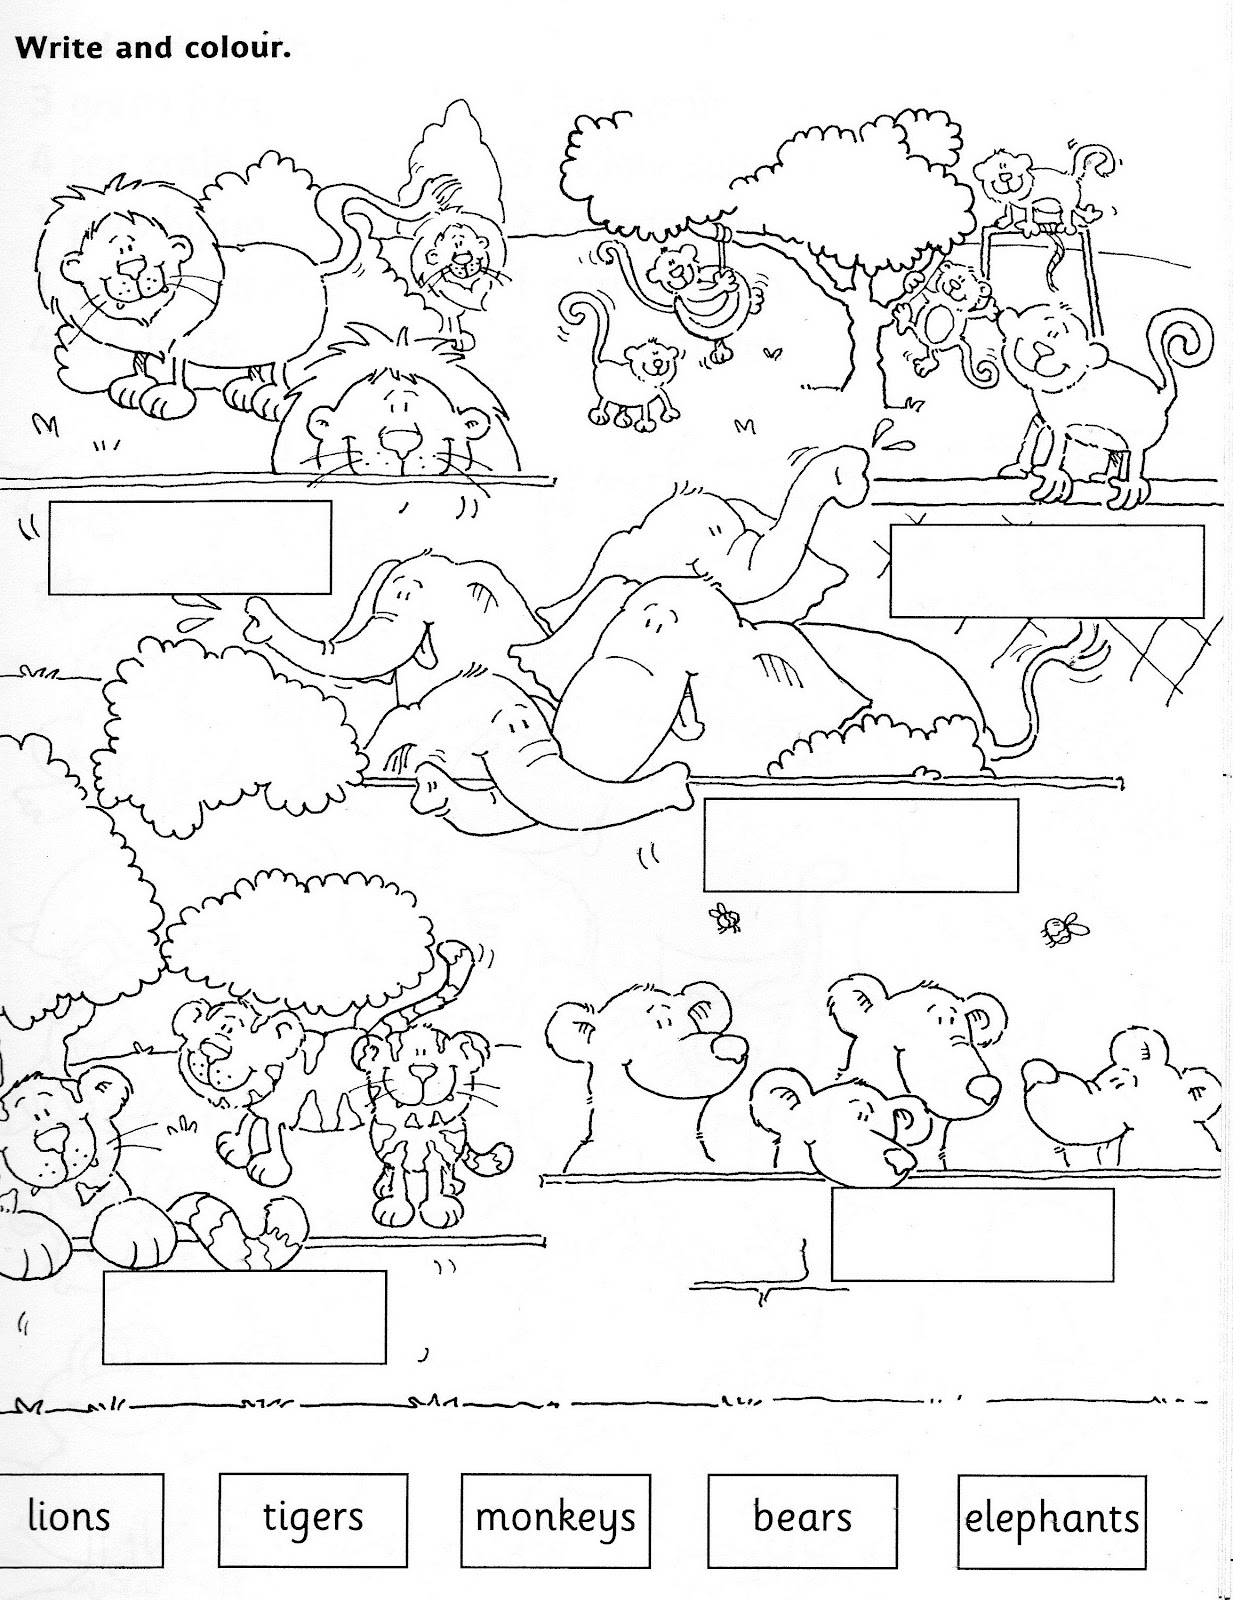 New 819 Worksheets With Zoo Animals